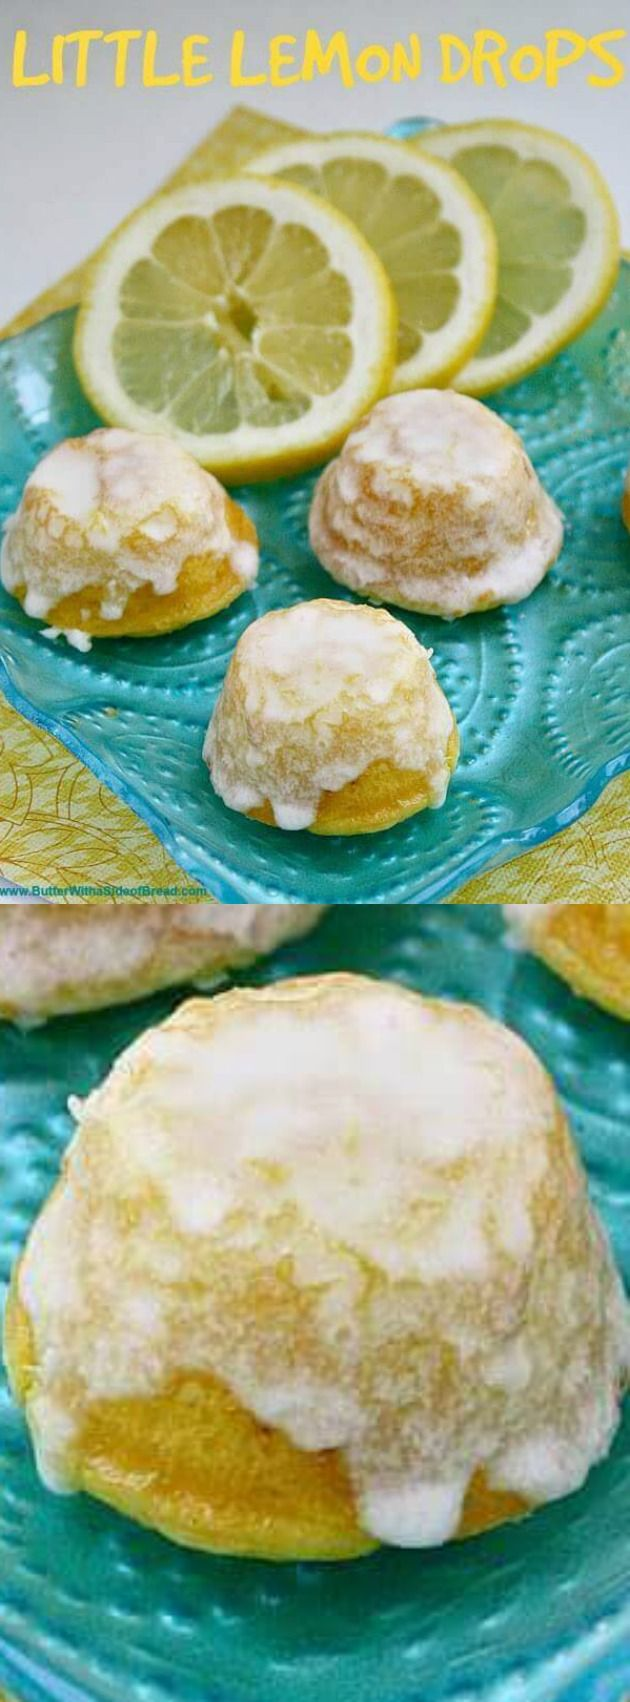 These Little Lemon Drops from Butter with a Side of Bread are the perfect bite-sized delicious lemon cake that your friends and family will gobble right up this summer!